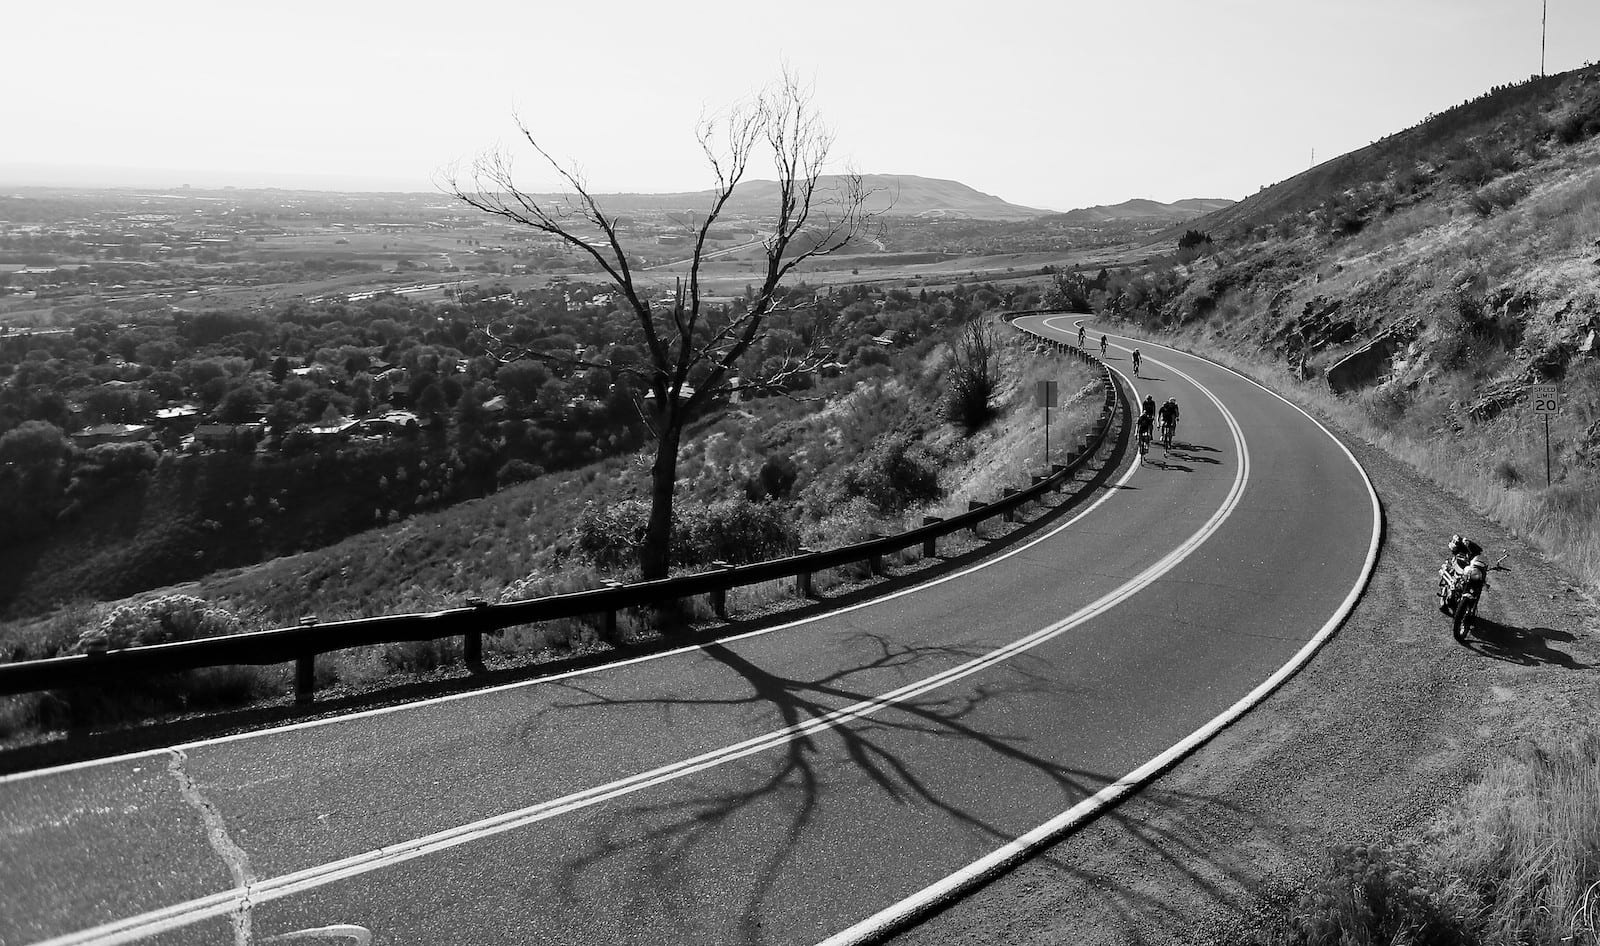 Bicycle race up Lookout Mountain, Golden, Colorado